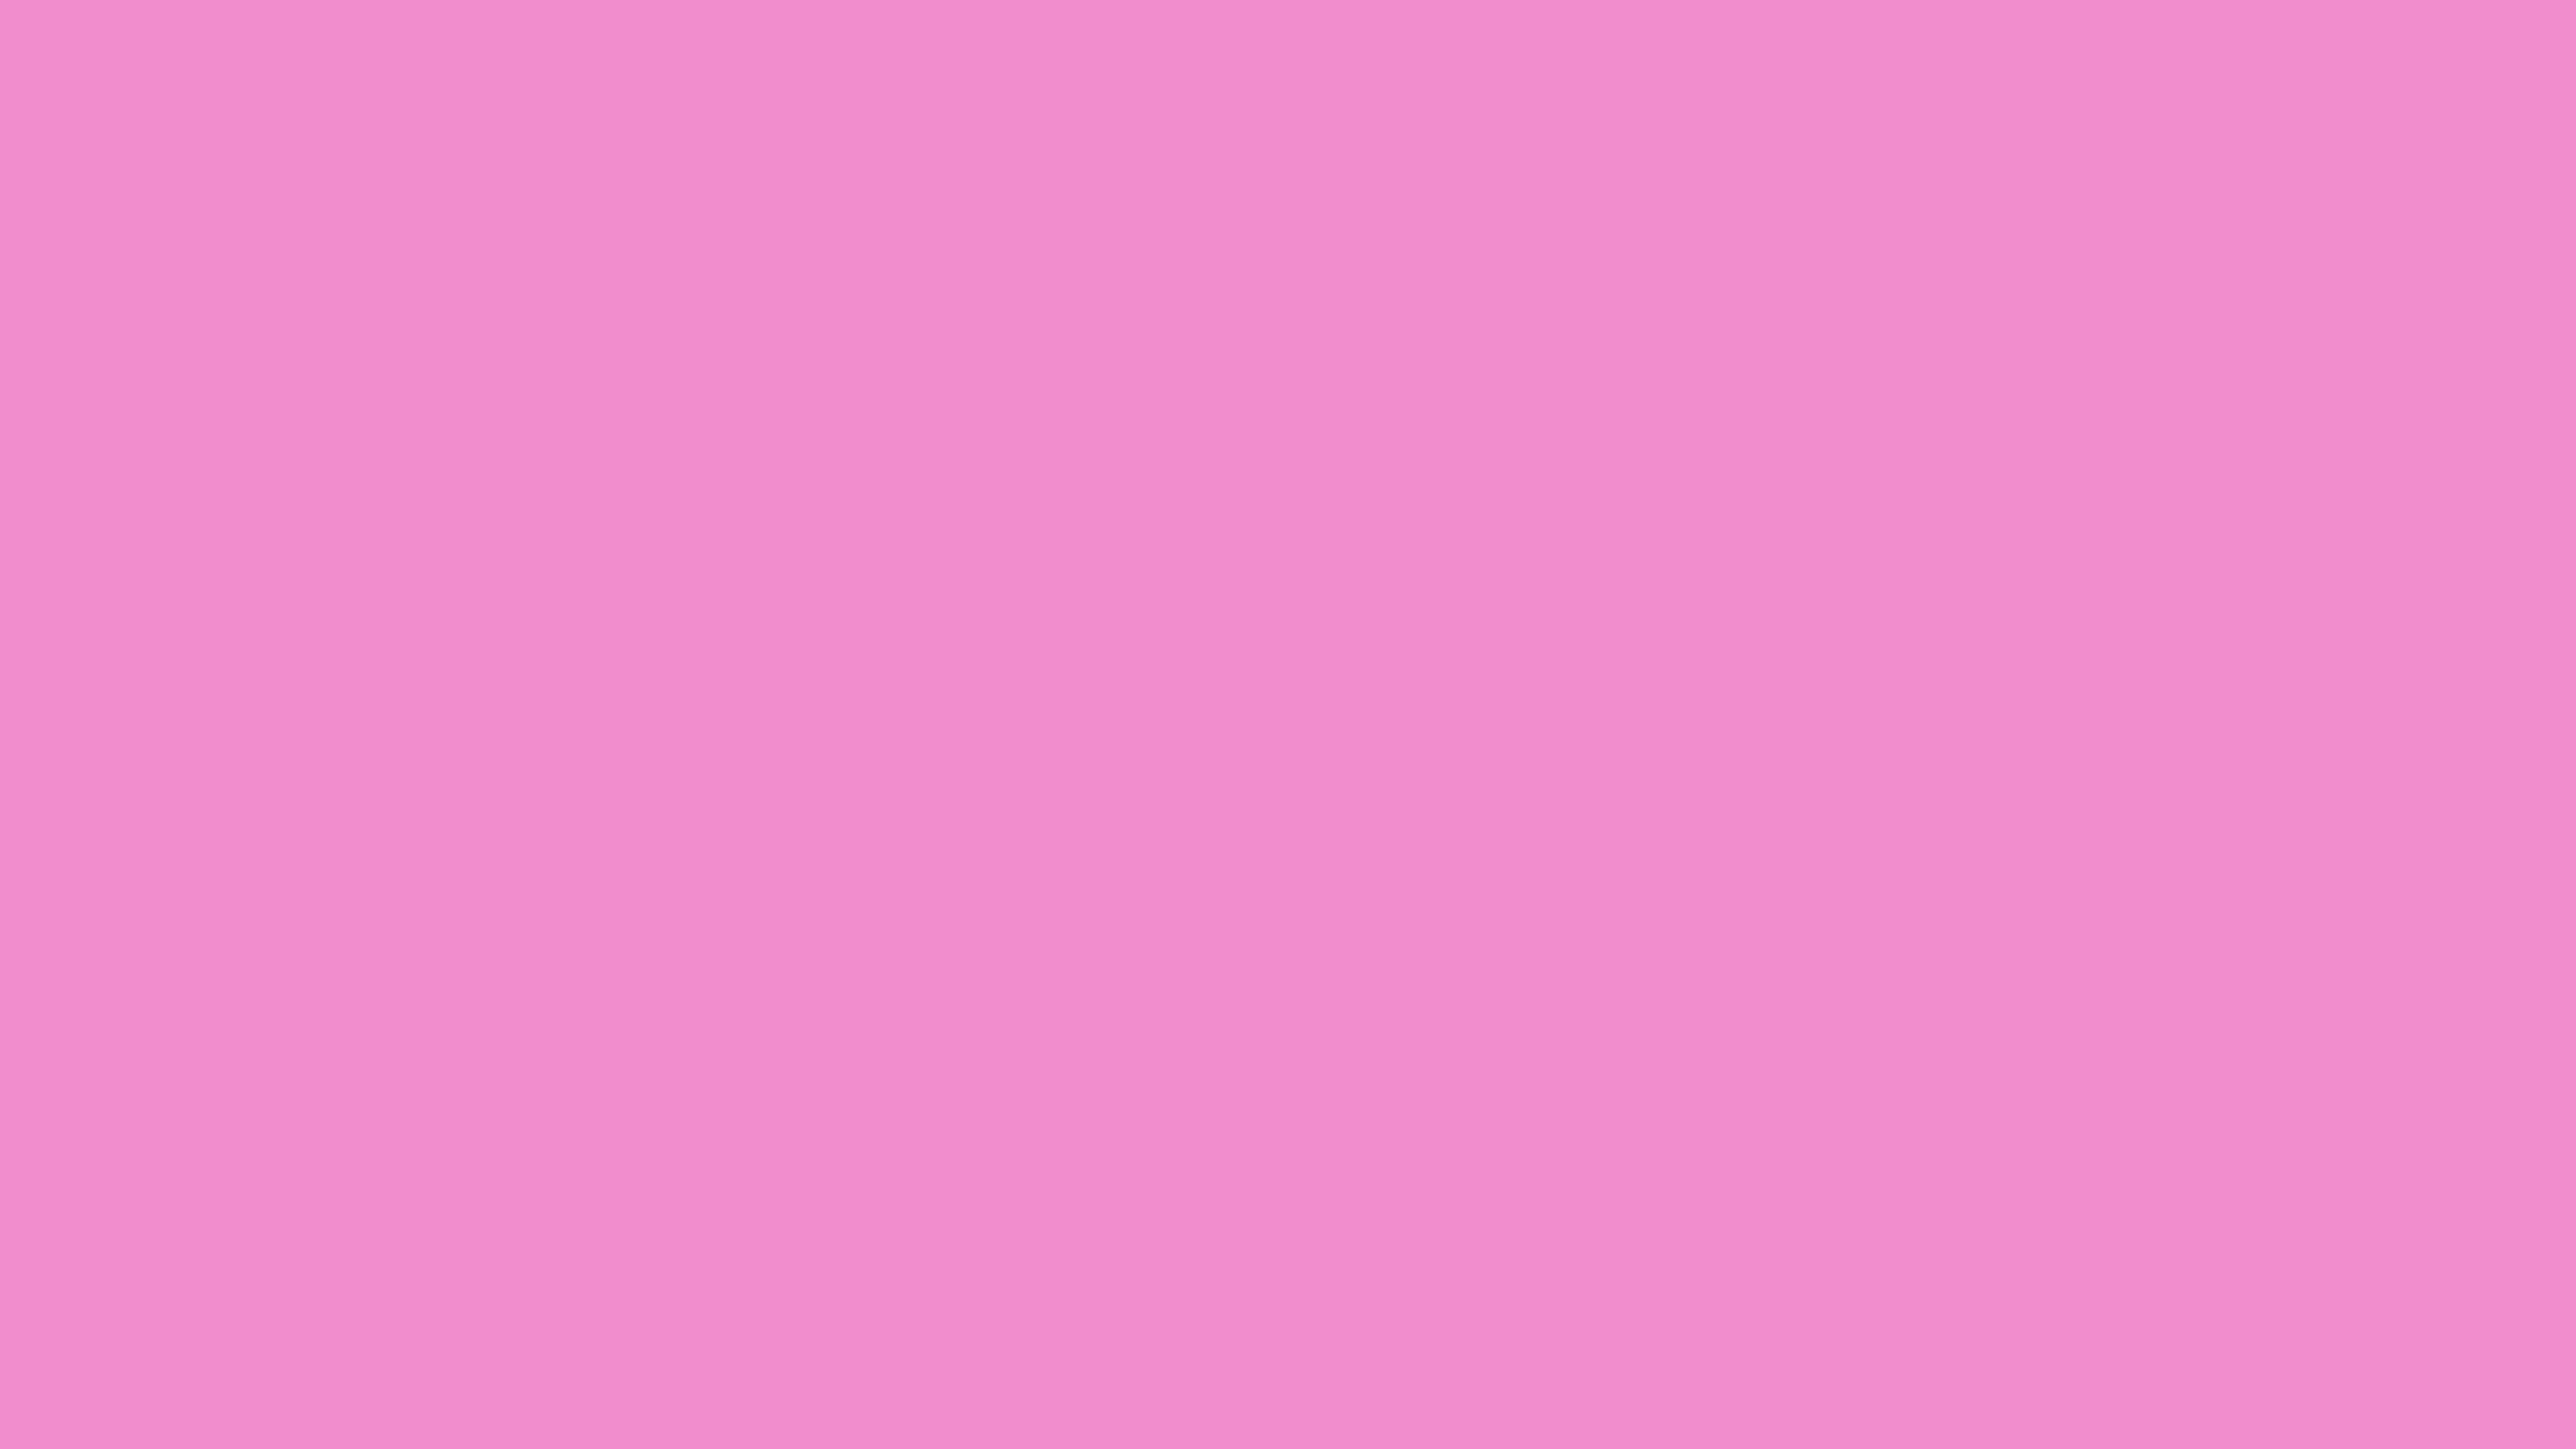 4096x2304 Orchid Pink Solid Color Background